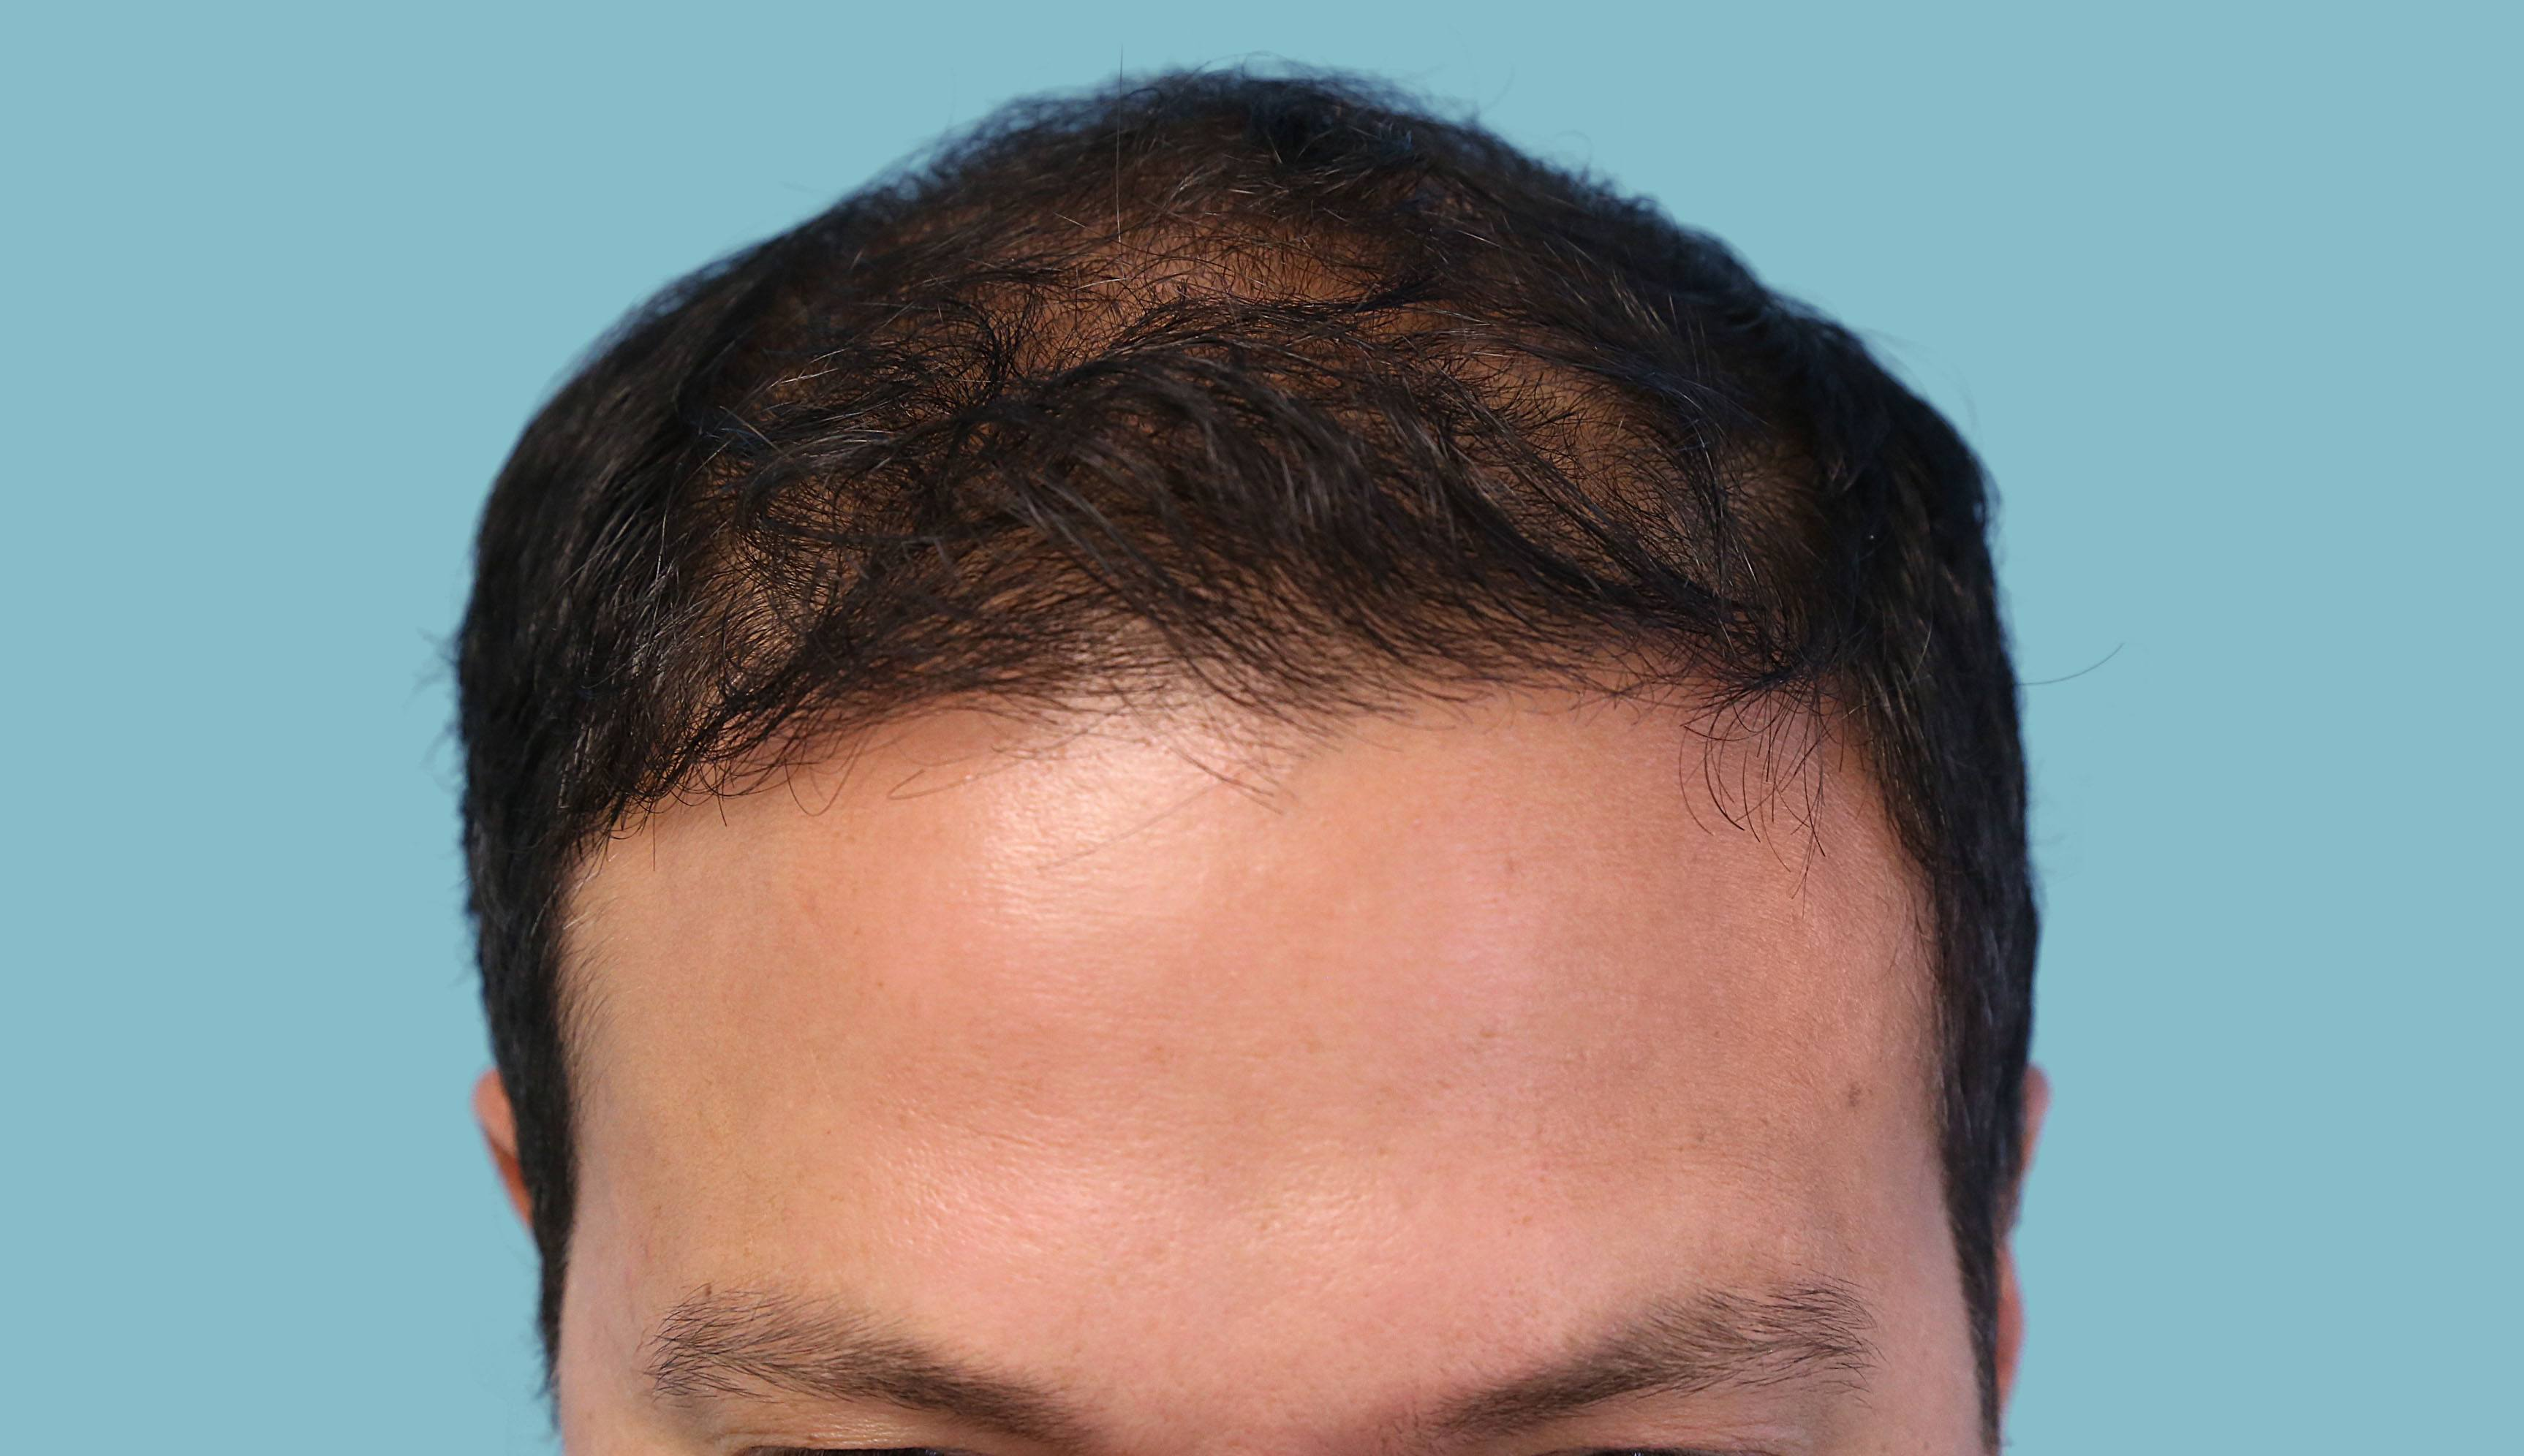 Before-FUE Patient